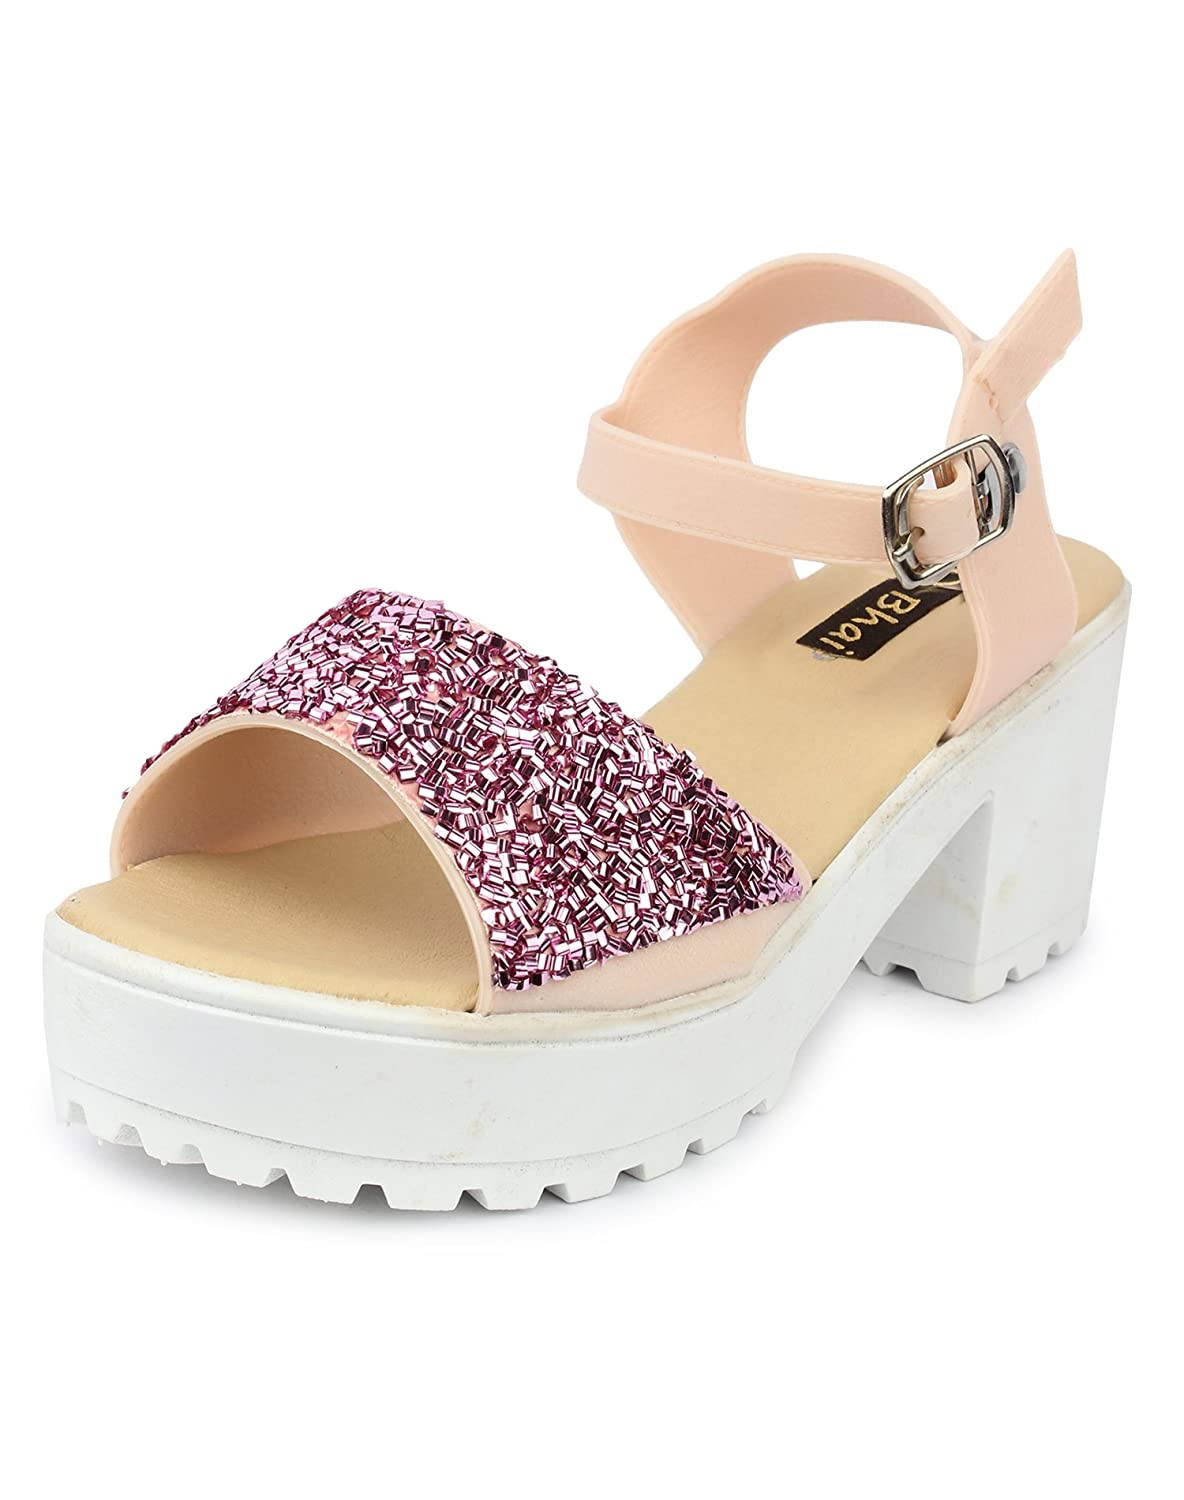 Synthetic Jelly Hatoda Light Weight, Flexible, Comfortable Sandal, Premium Quality, Indoor Slipper, Outdoor slipper for women (40 EU, Pink)